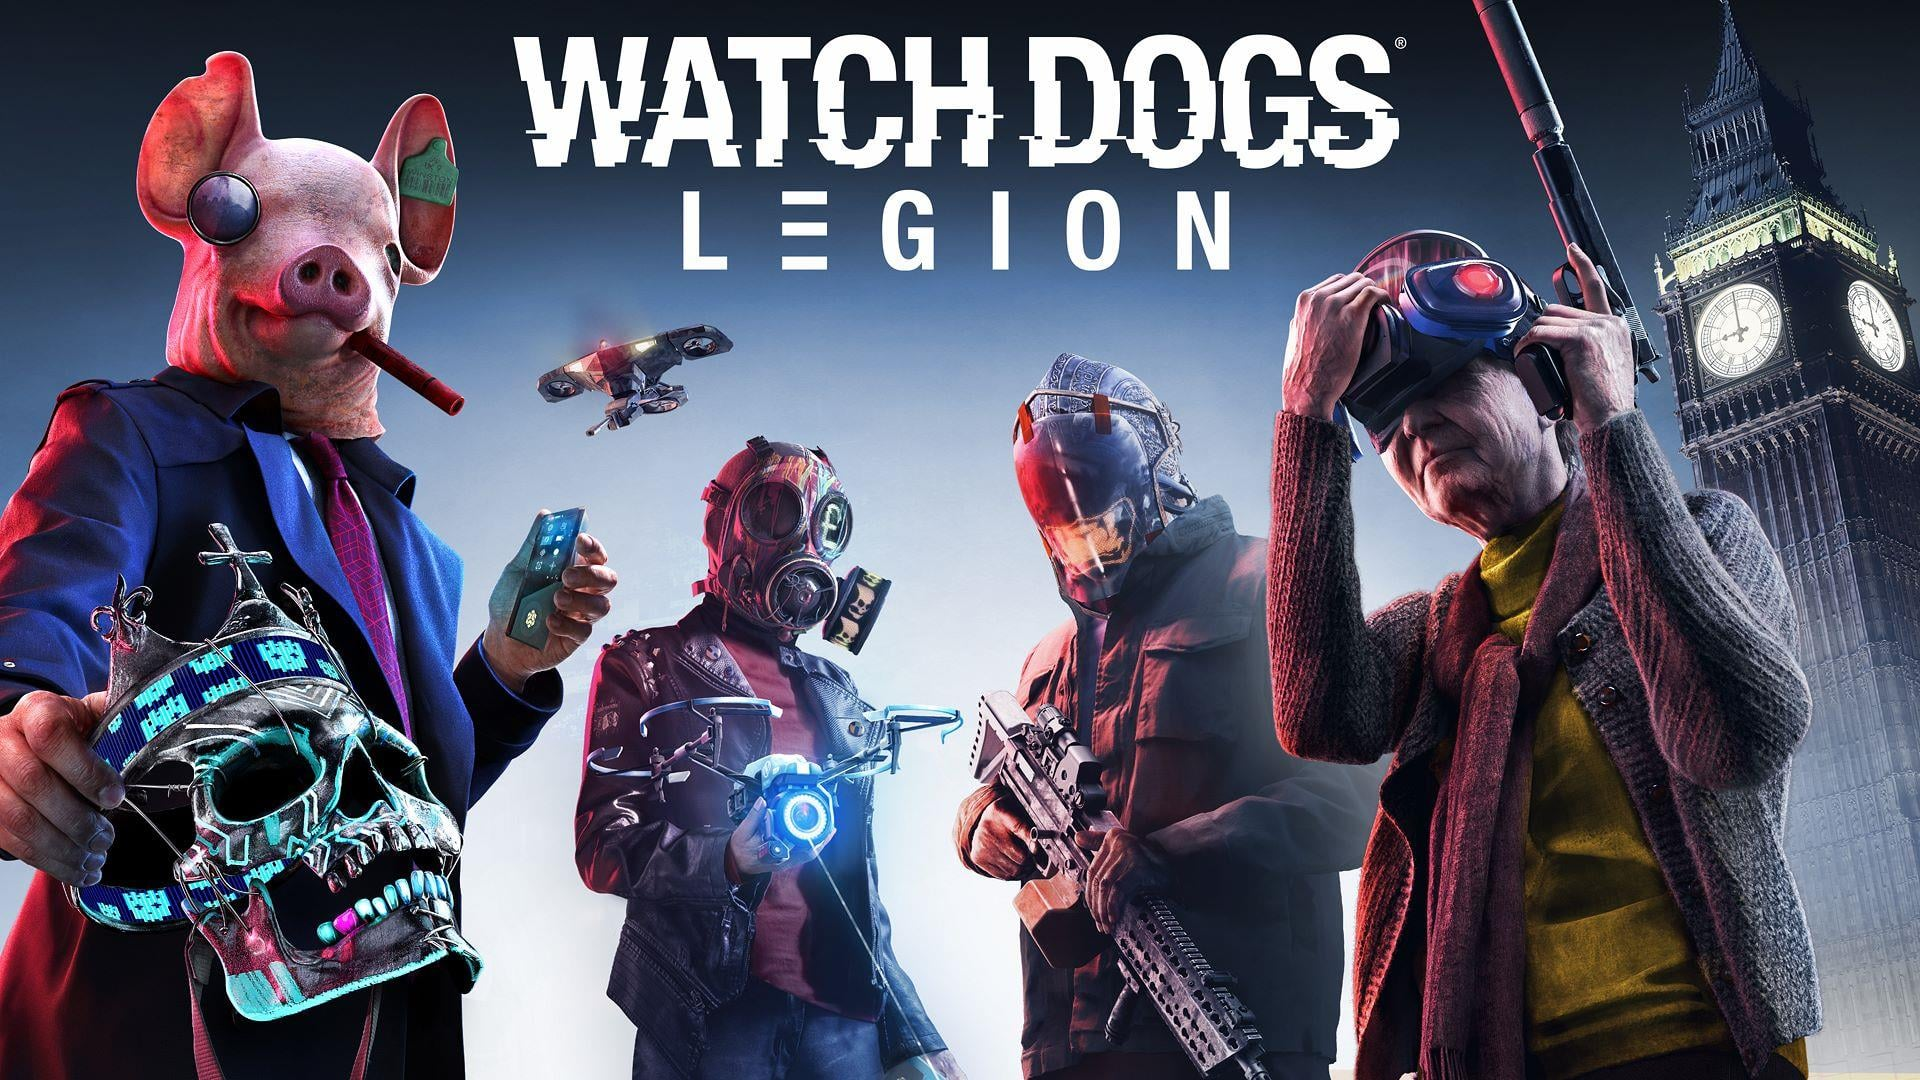 New Story Trailer for Watch Dogs: Legion Released